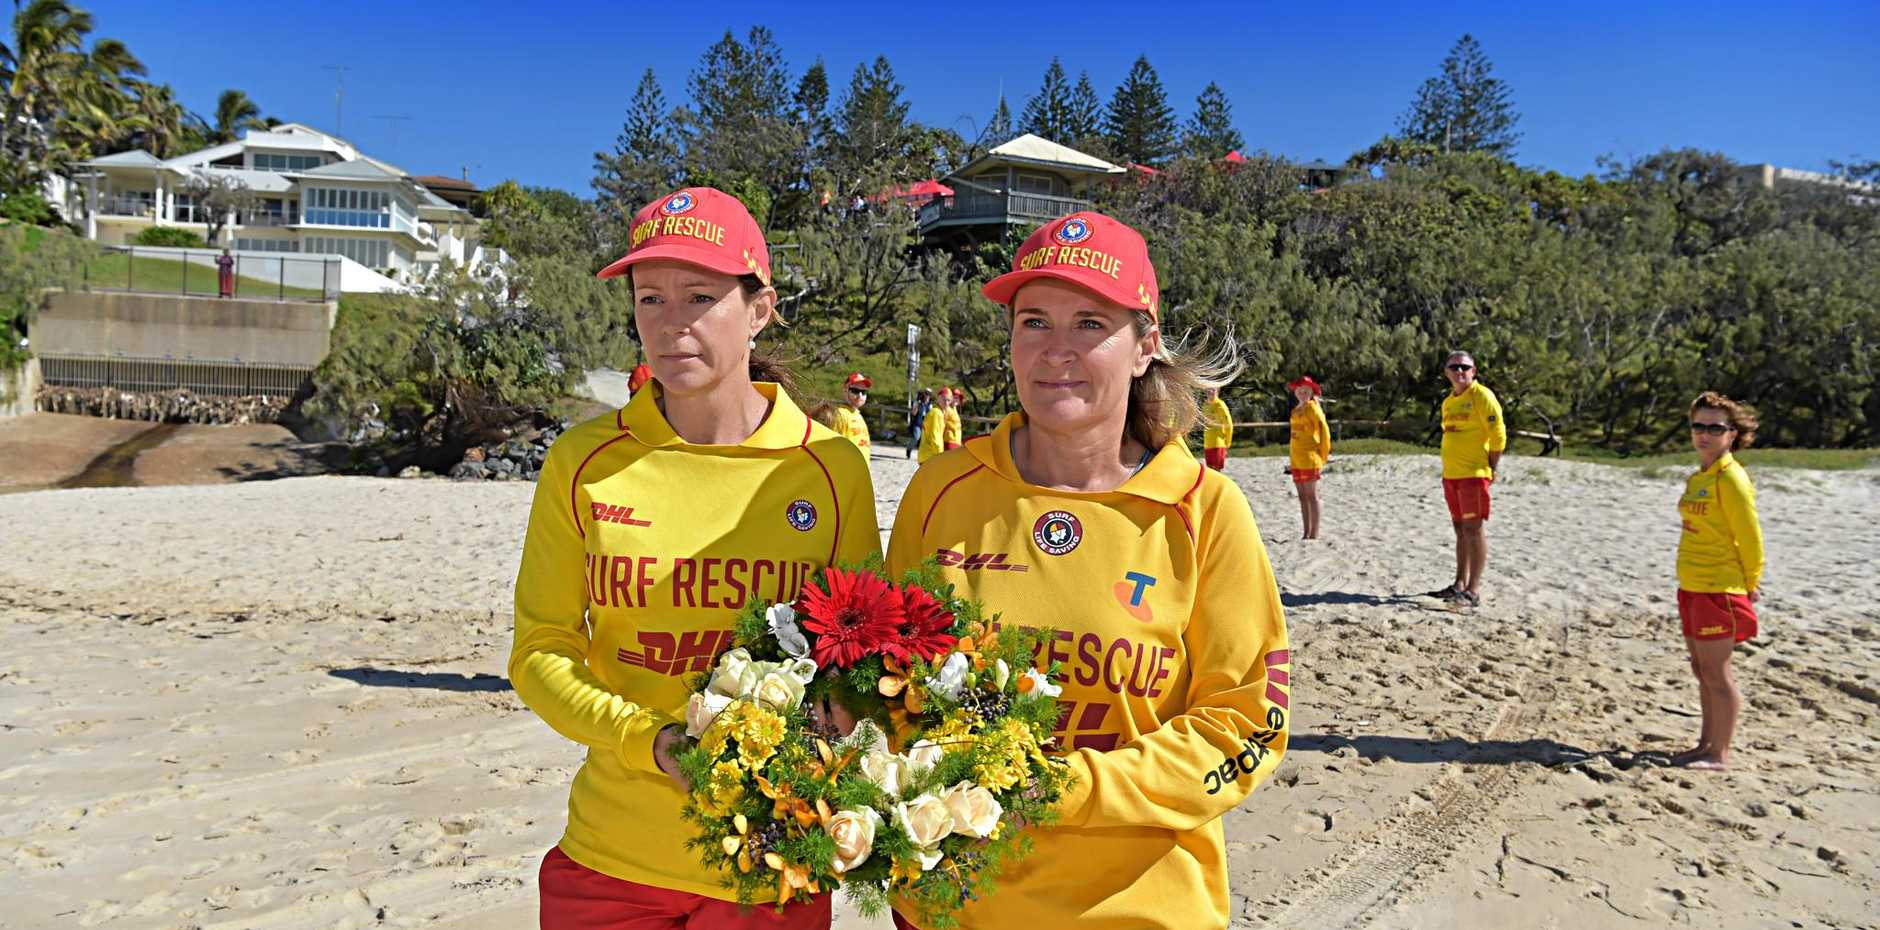 SOLEMN: Surf Life Saving Queensland hold a Memorial Day service at Sunshine Beach Surf Club.Jane Fraser and Allison Johnstone prepare to take a wreath to the ocean to honour people who have lost their lives.